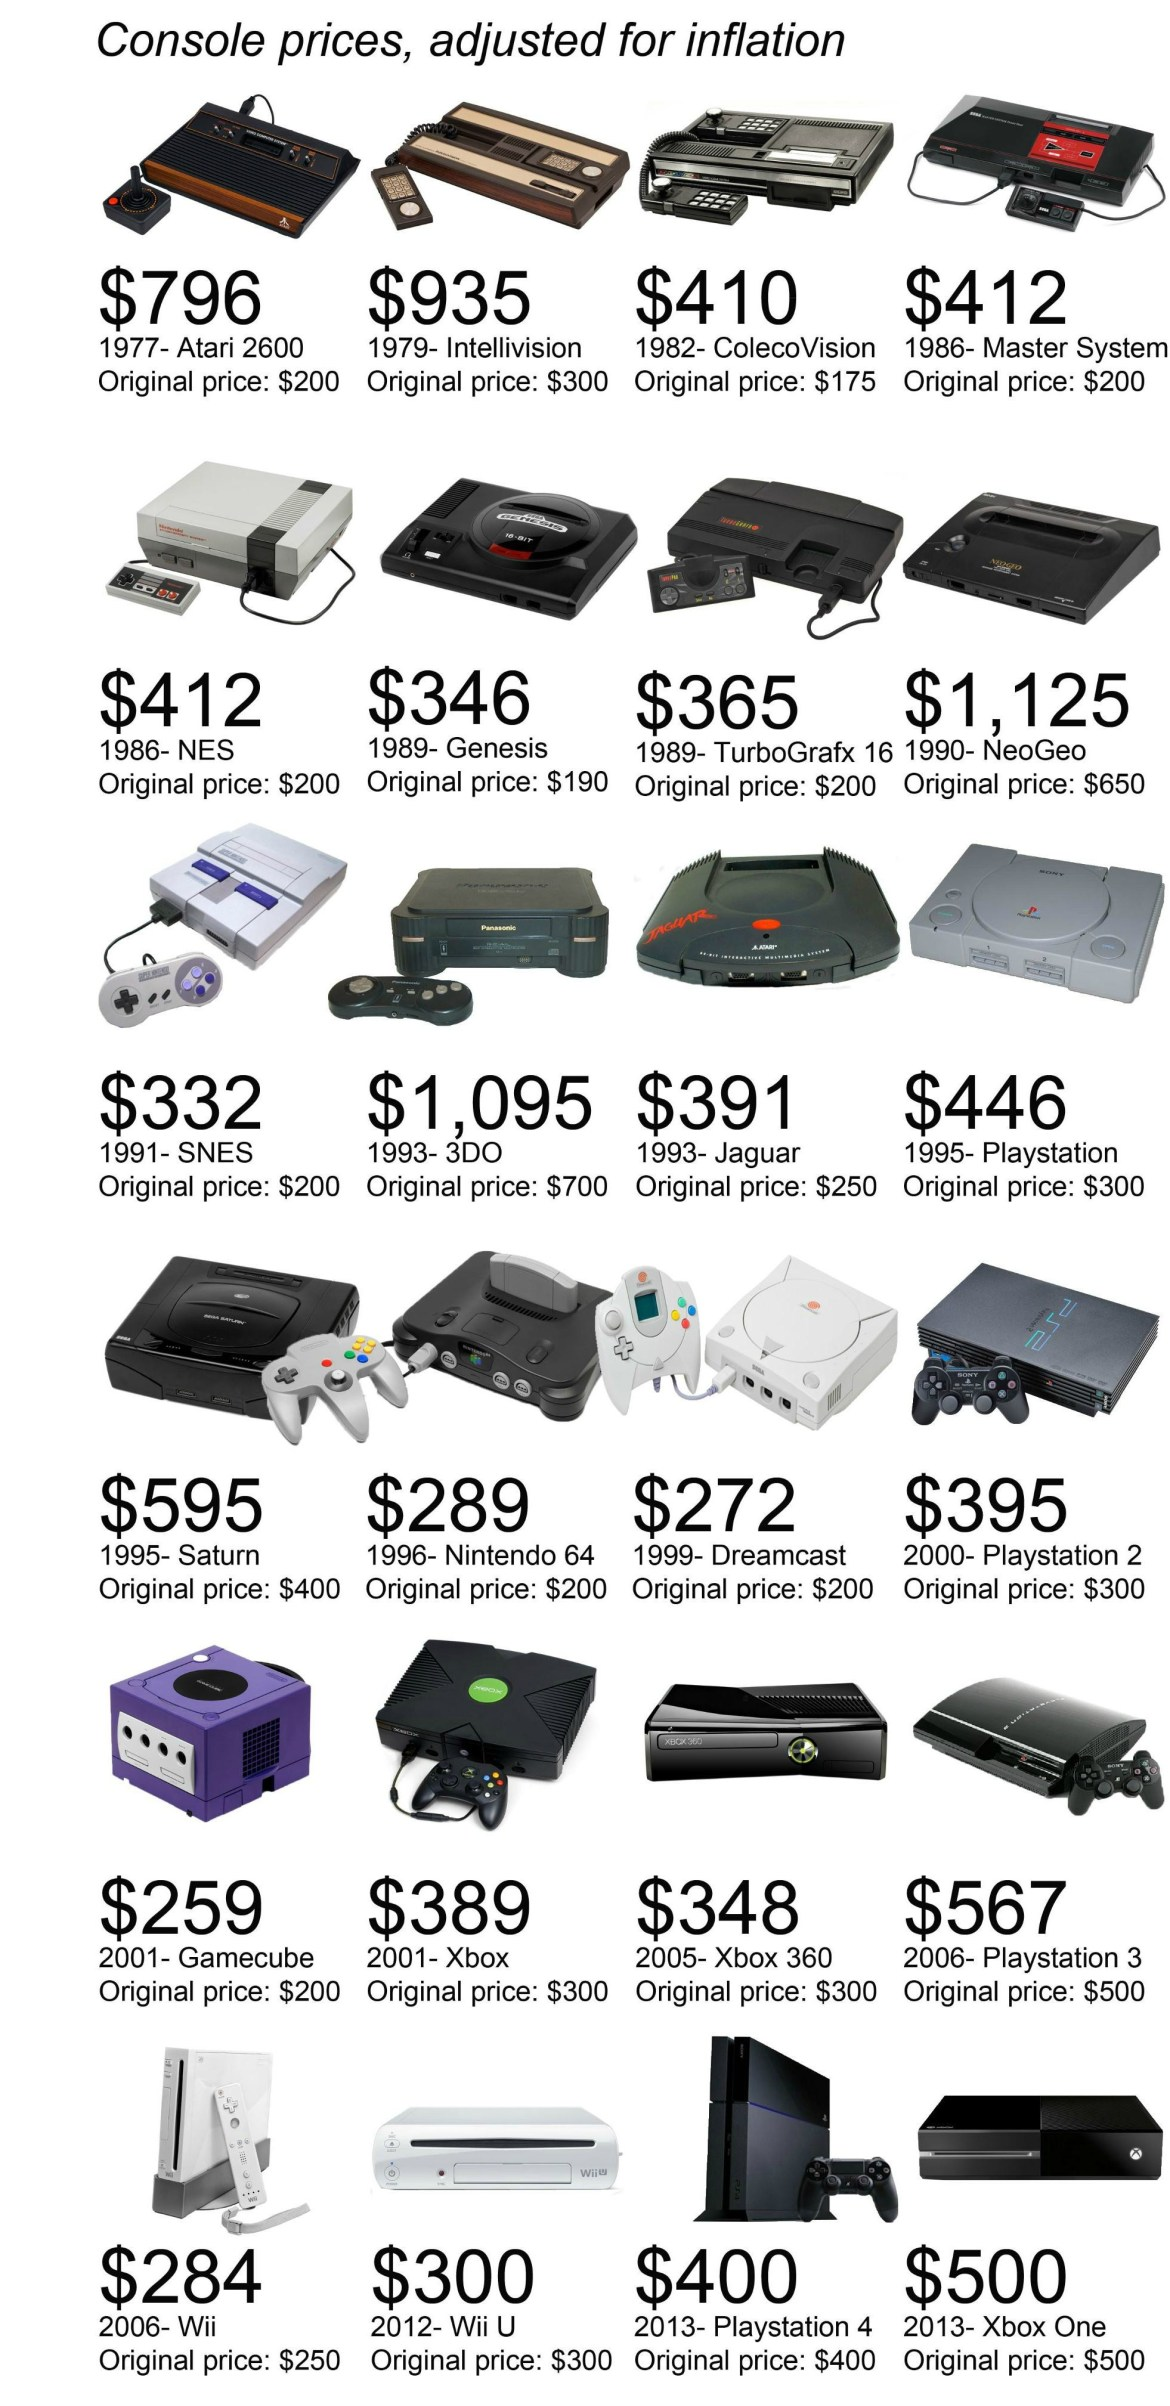 Console Price Inflation